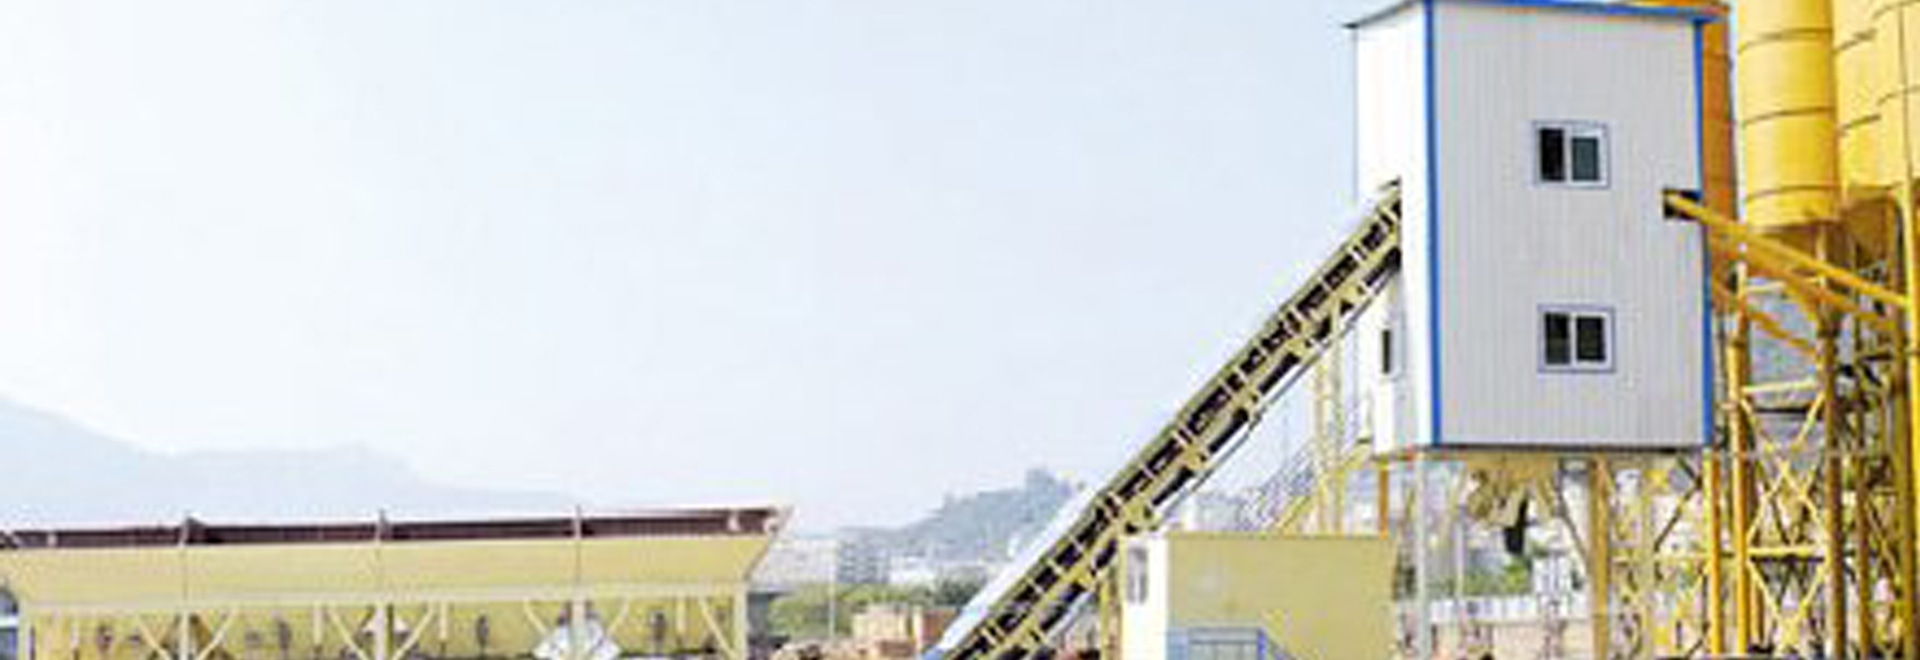 HZS60 Concrete Batching Plant in Morocco